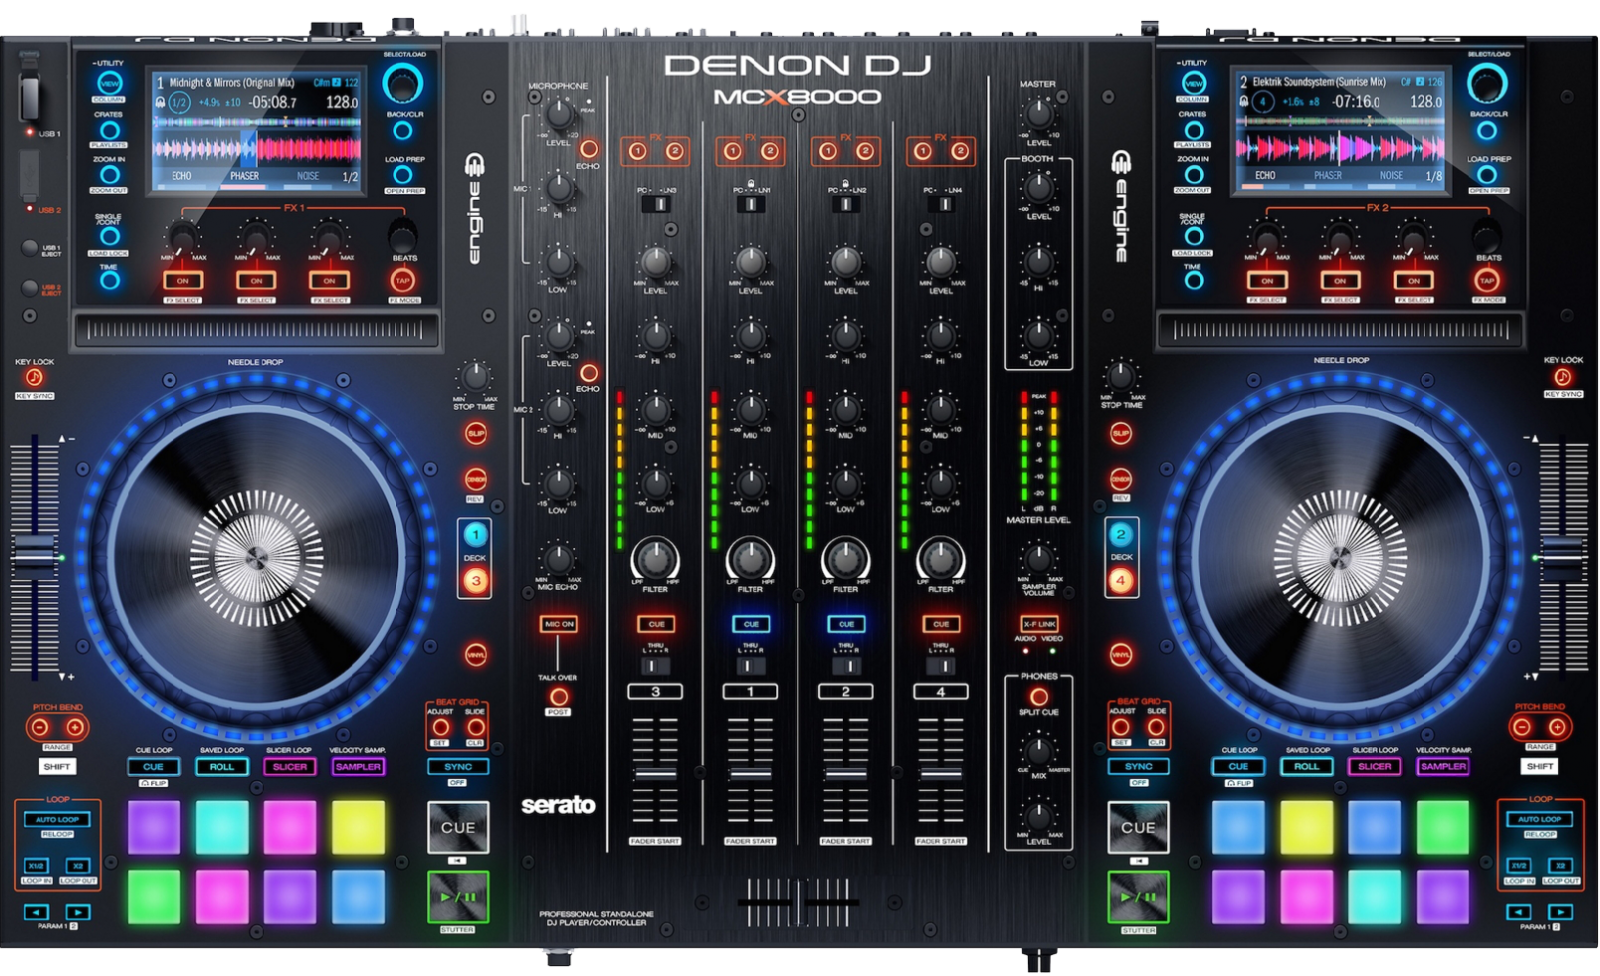 Denon DJ MCX8000 - Setup with Virtual DJ 8 Professional